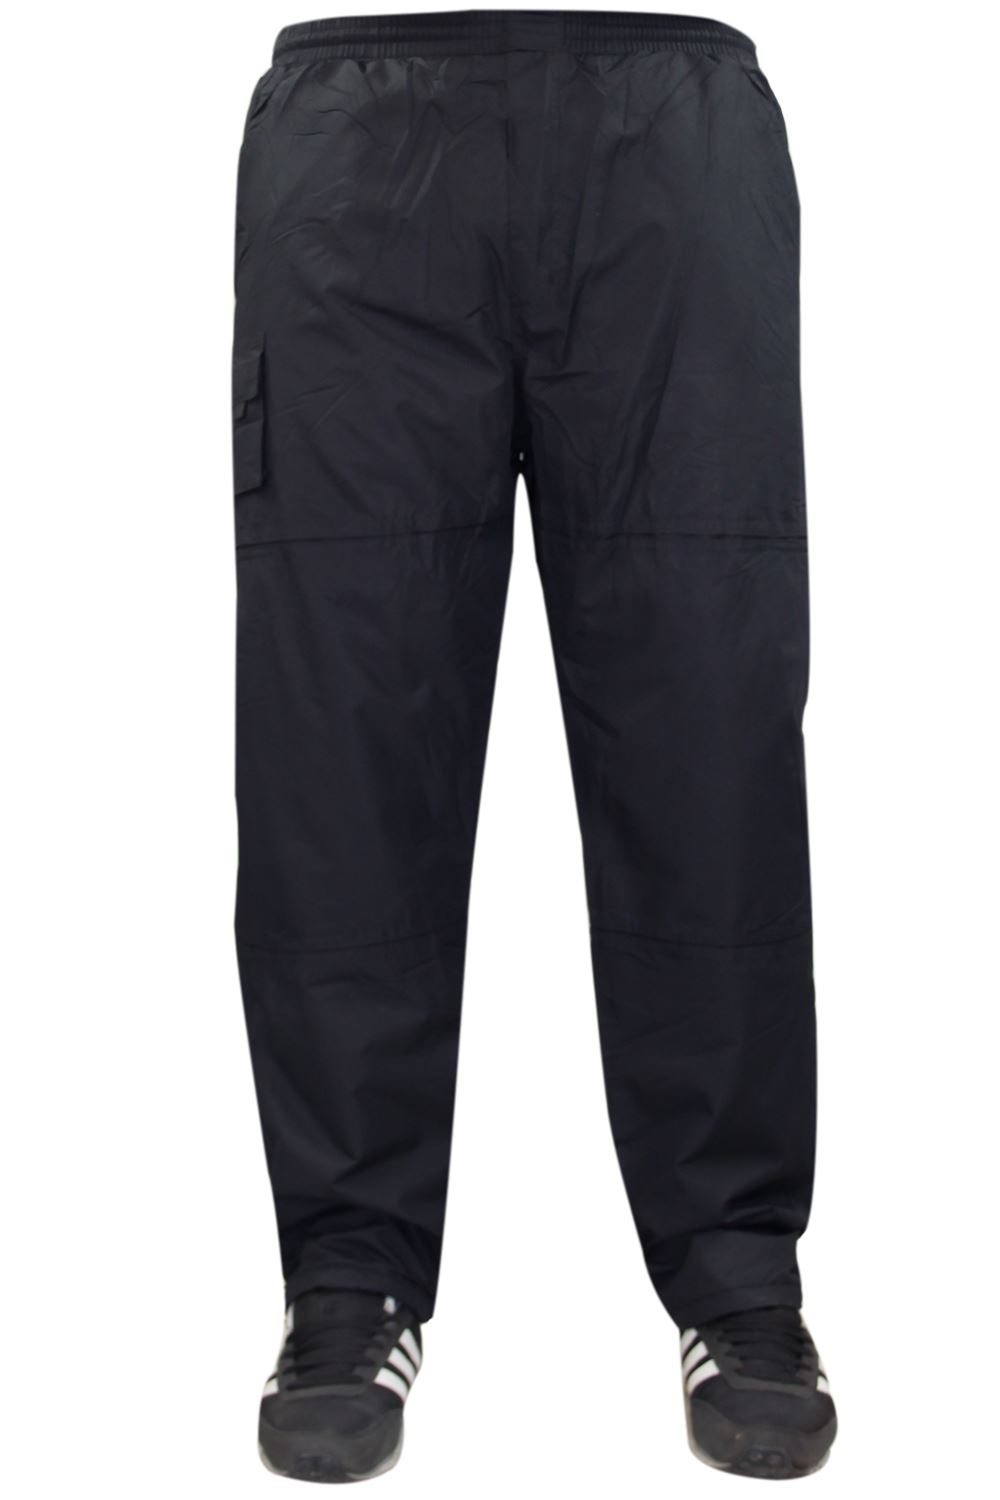 Shop for Fleece Pants at REI - FREE SHIPPING With $50 minimum purchase. Top quality, great selection and expert advice you can trust. % Satisfaction Guarantee. Shop for Fleece Pants at REI - FREE SHIPPING With $50 minimum purchase. Top quality, great selection and expert advice you can trust. % Satisfaction Guarantee.